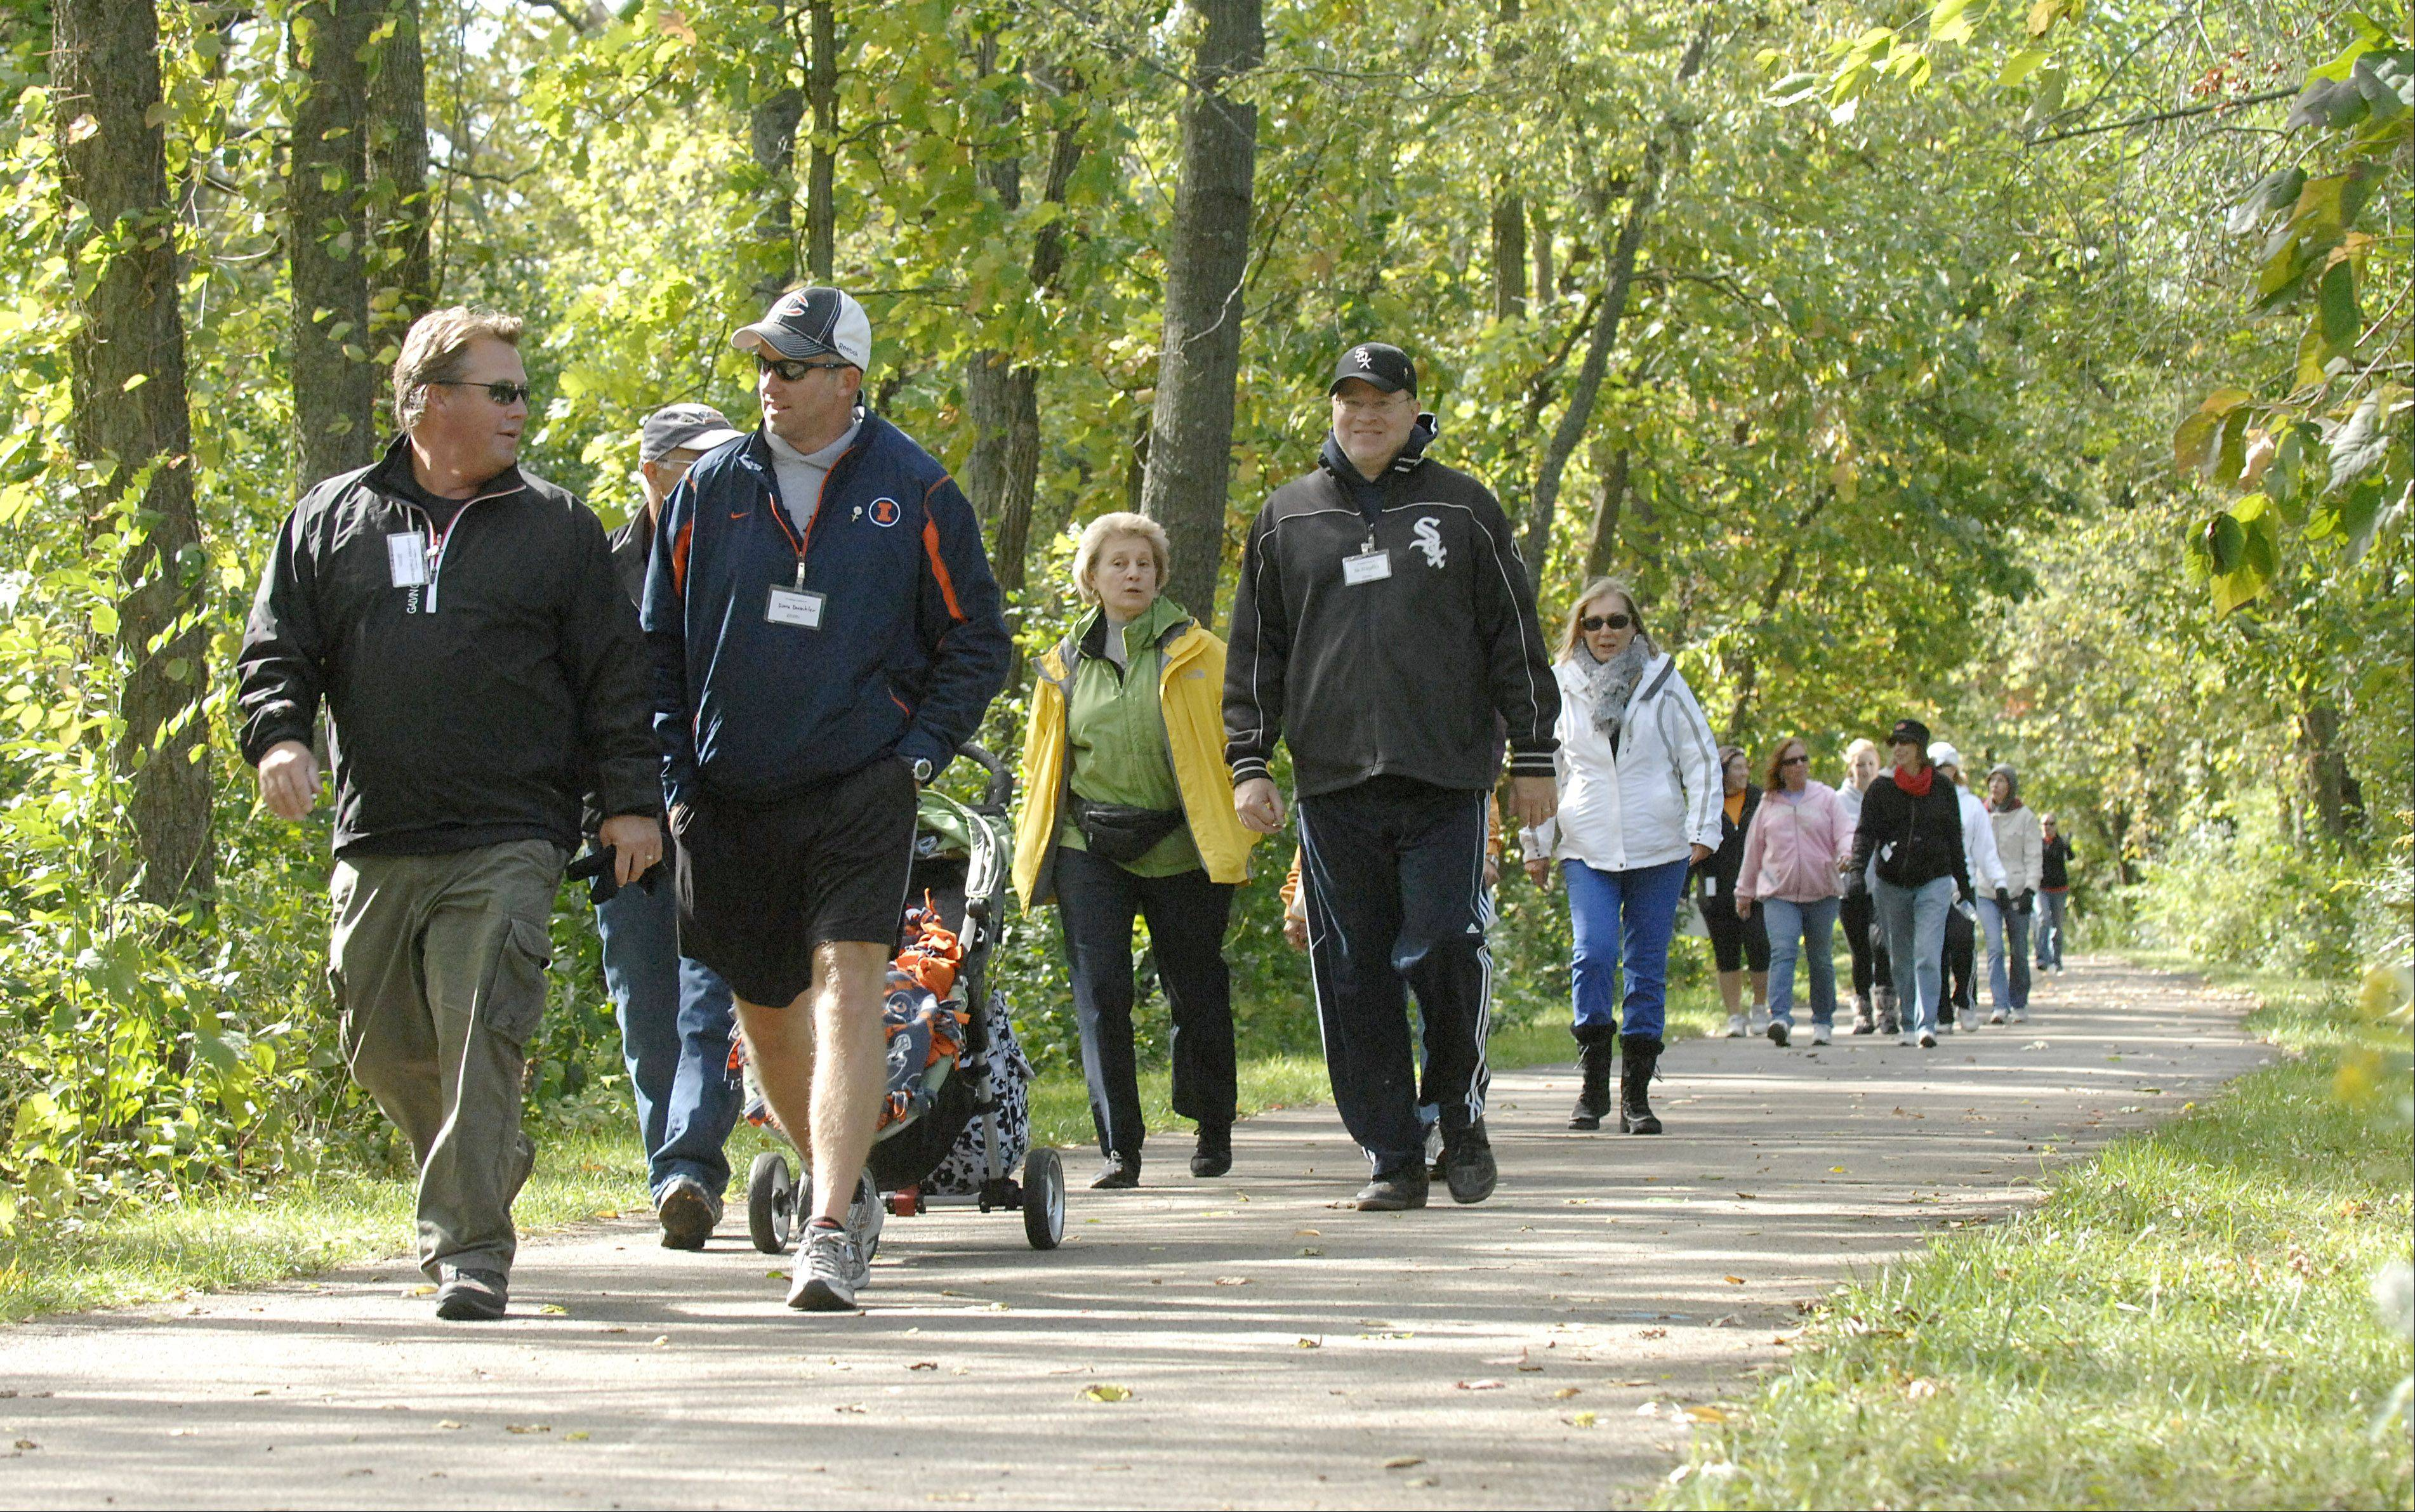 About 190 participants joined in Fox Valley Volunteer Hospice's sixth annual Hike for Hospice 5K on Saturday in Batavia.